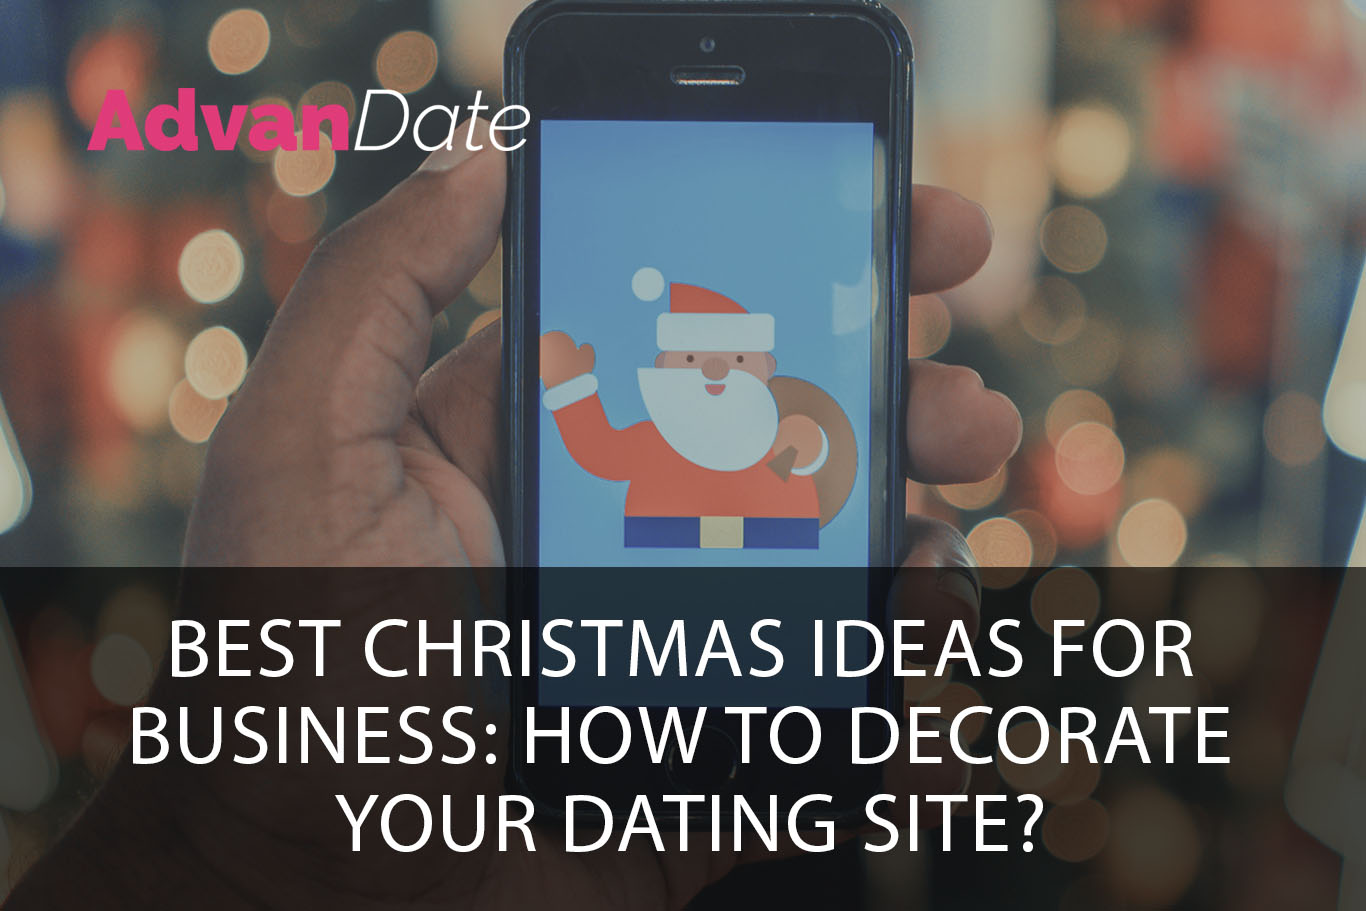 Best Christmas Ideas for business: how to decorate your dating site for Christmas?